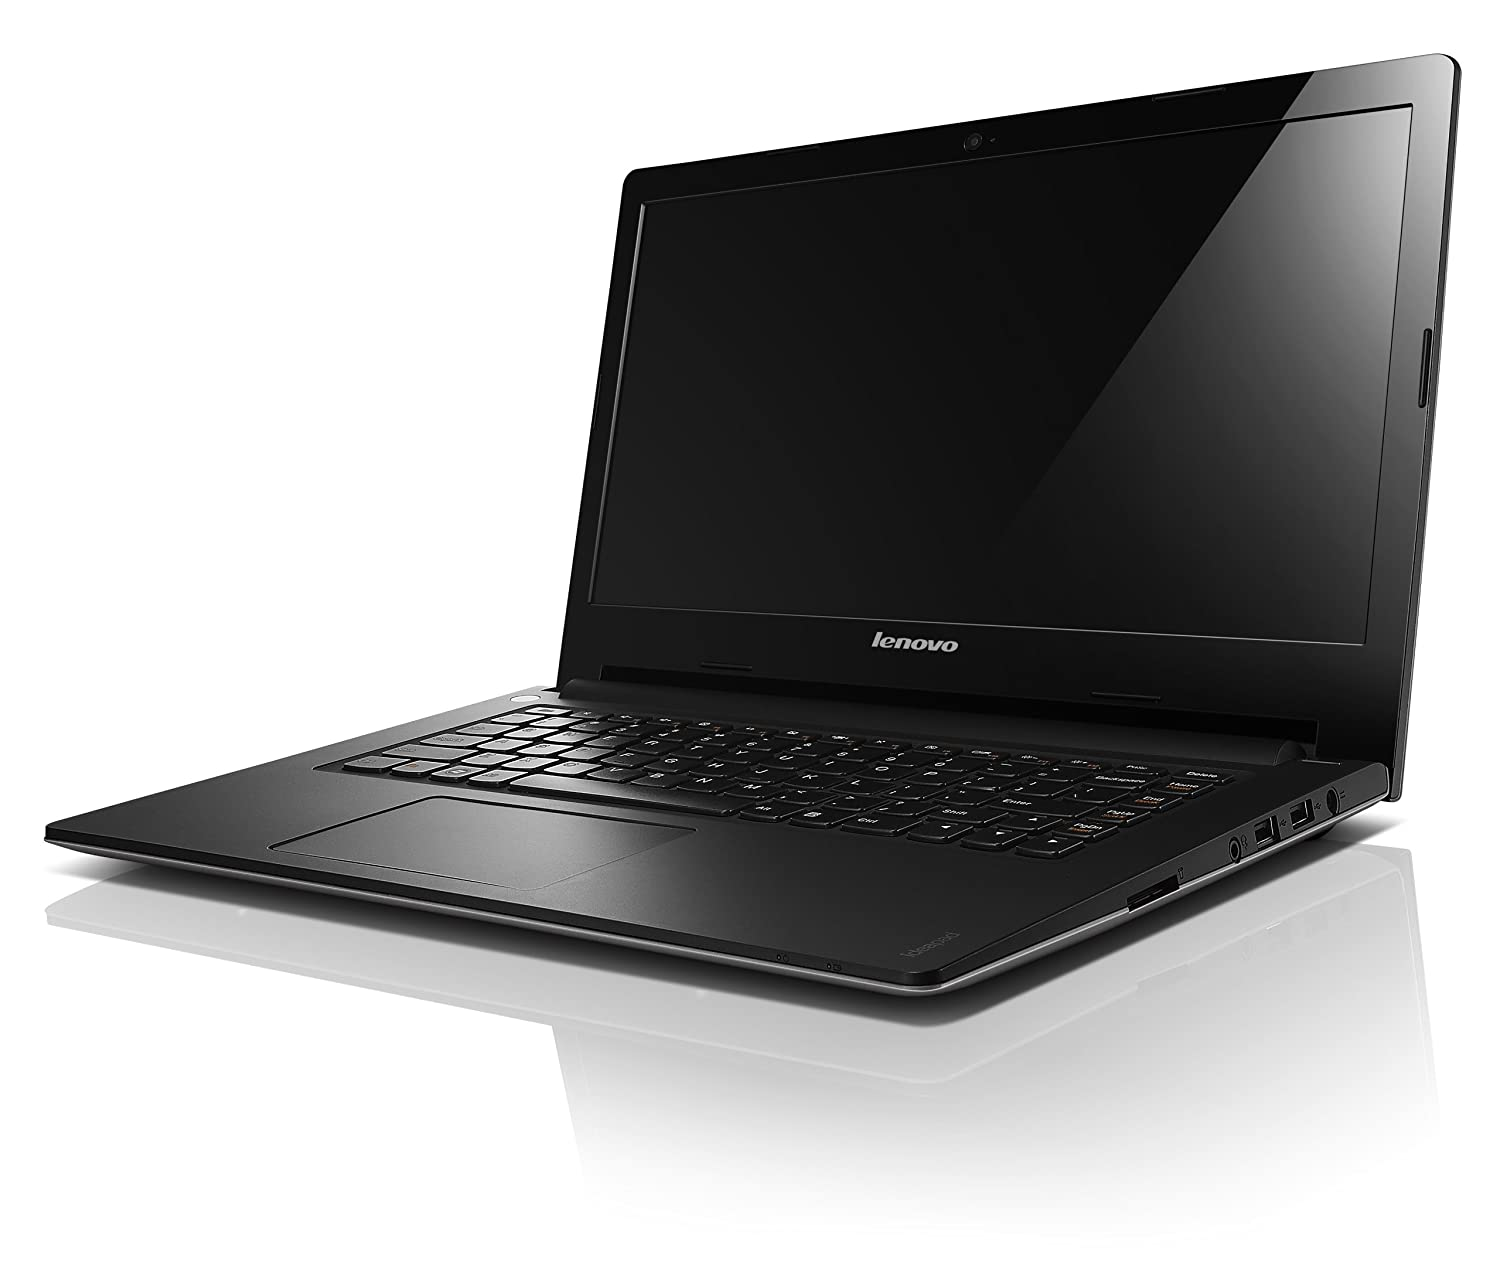 Lenovo IdeaPad S400 35,56cm Laptop: Amazon.de: Computer & Zubehör